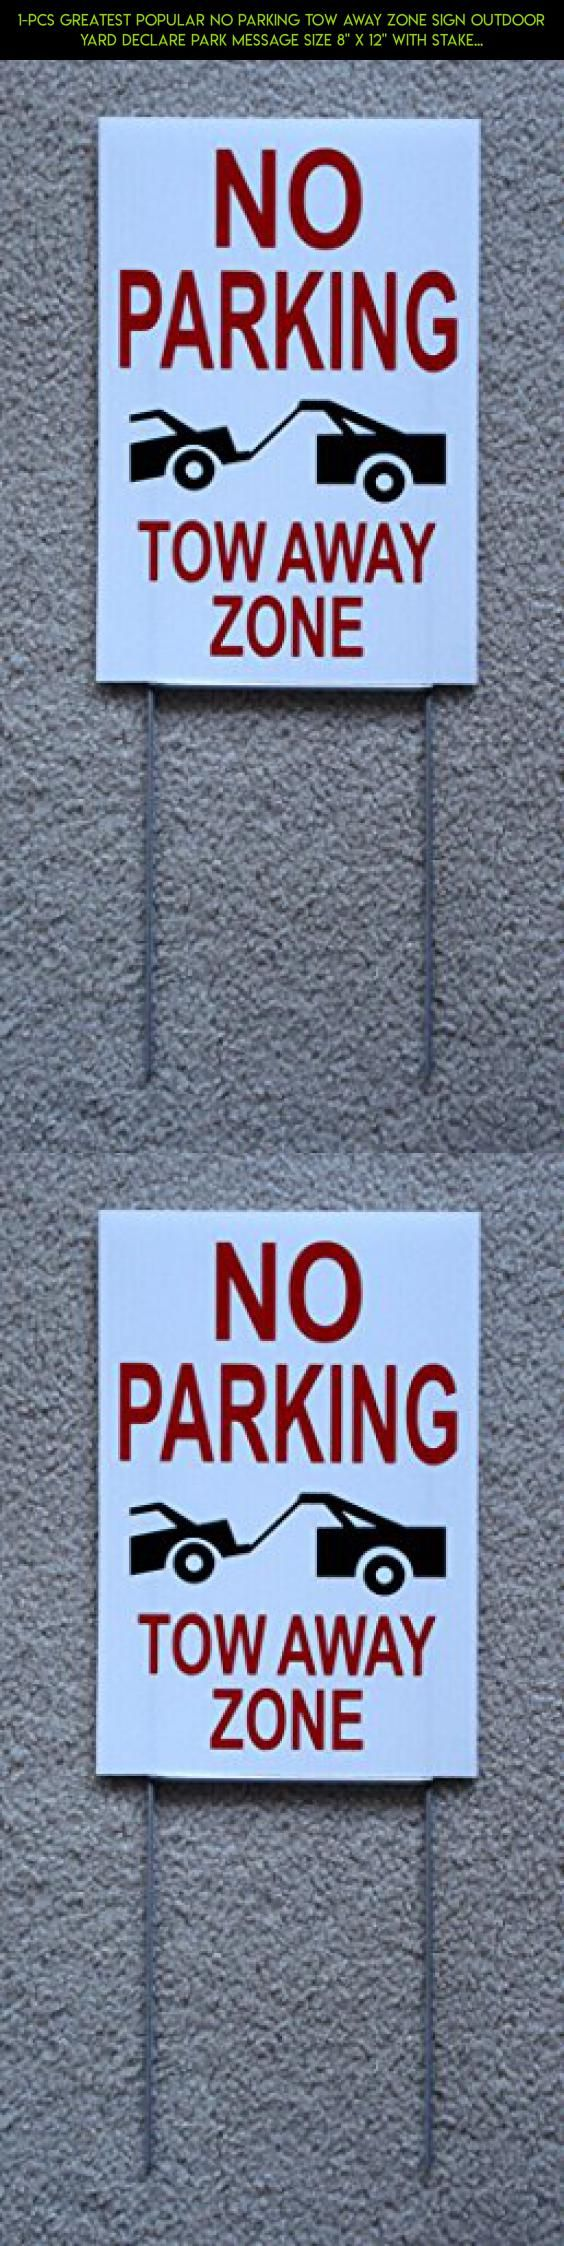 "1-Pcs Greatest Popular No Parking Tow Away Zone Sign Outdoor Yard Declare Park Message Size 8"" x 12"" with Stake Type White #plans #storage #gadgets #drone #parts #camera #sign #products #shopping #racing #technology #tech #kit #fpv #room"